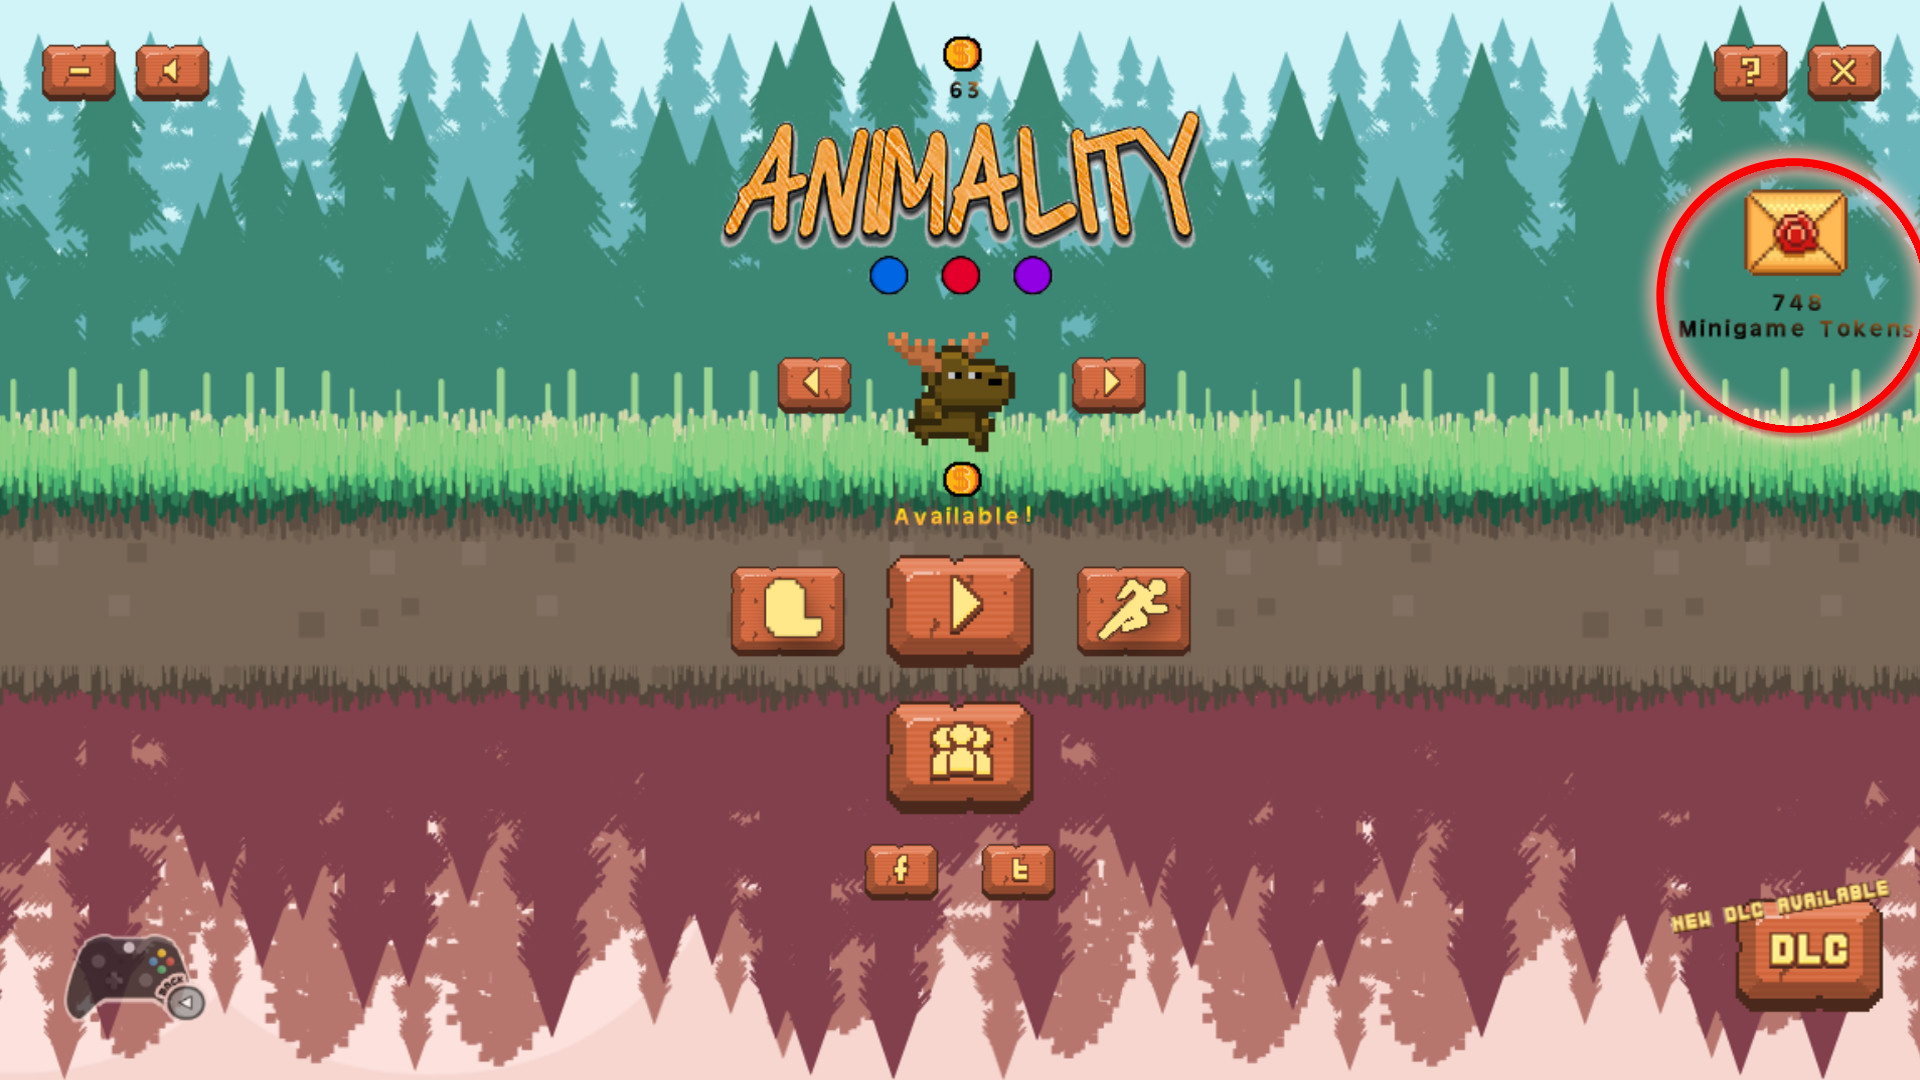 ANIMALITY - 250 Minigame Tokens screenshot